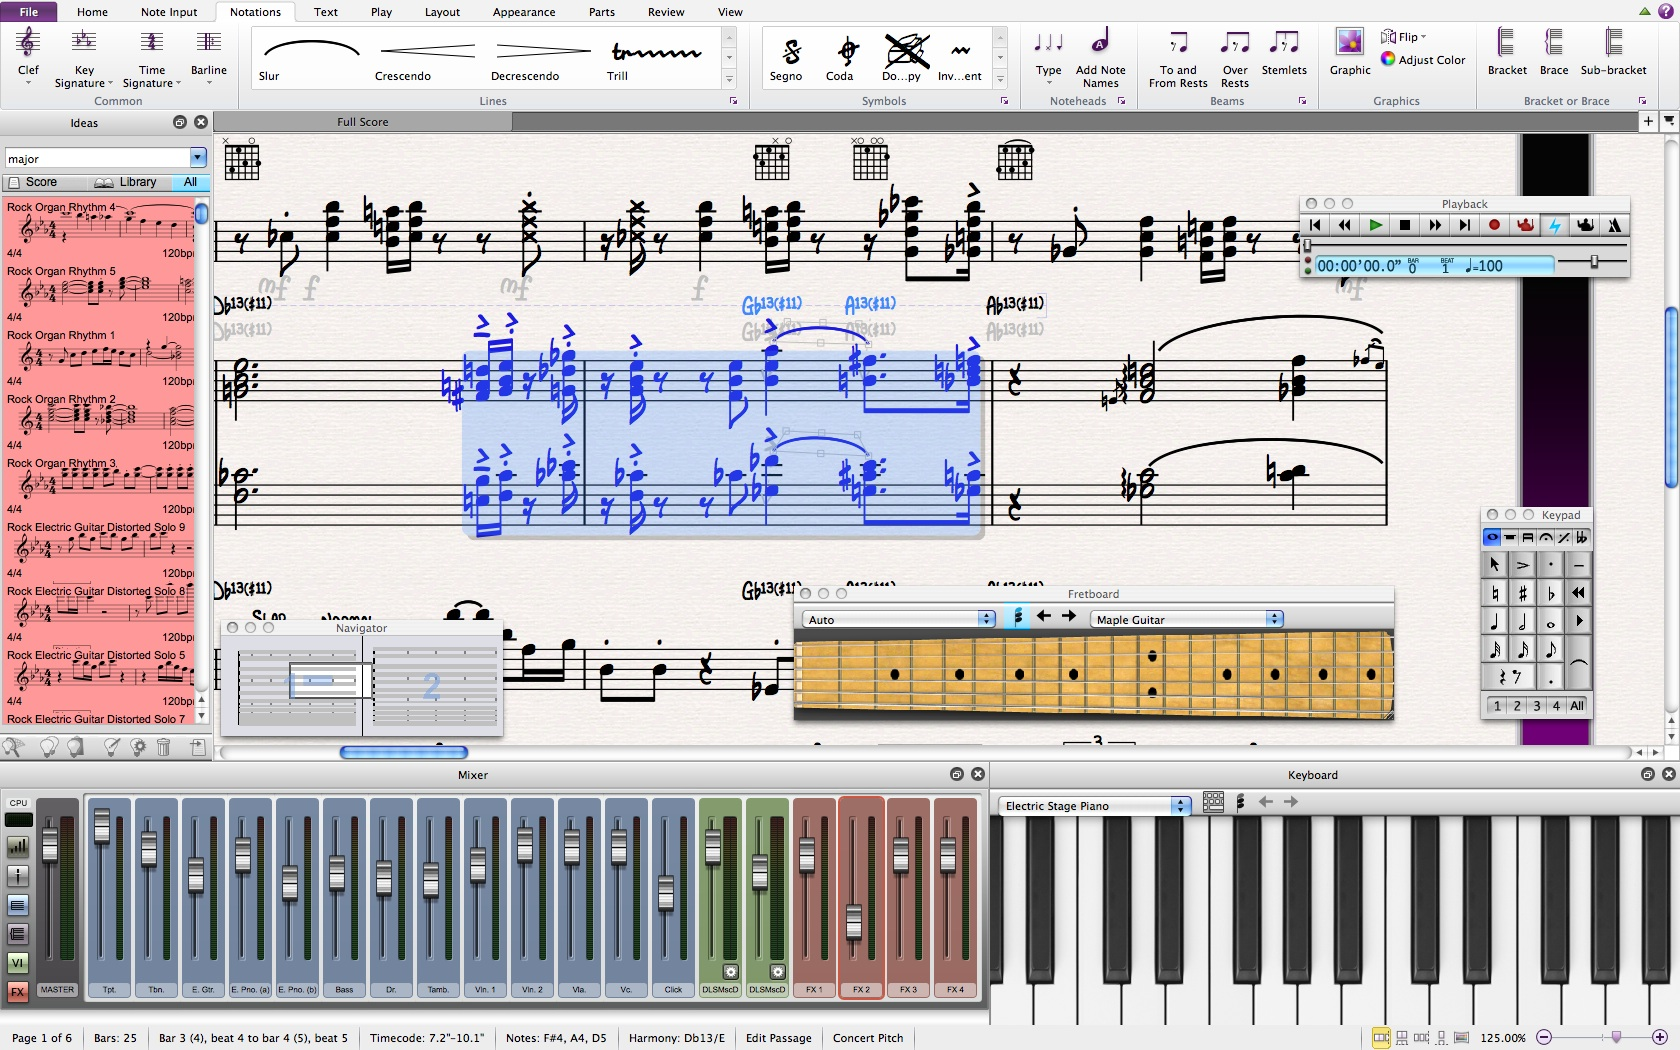 sibelius music software free download windows 7